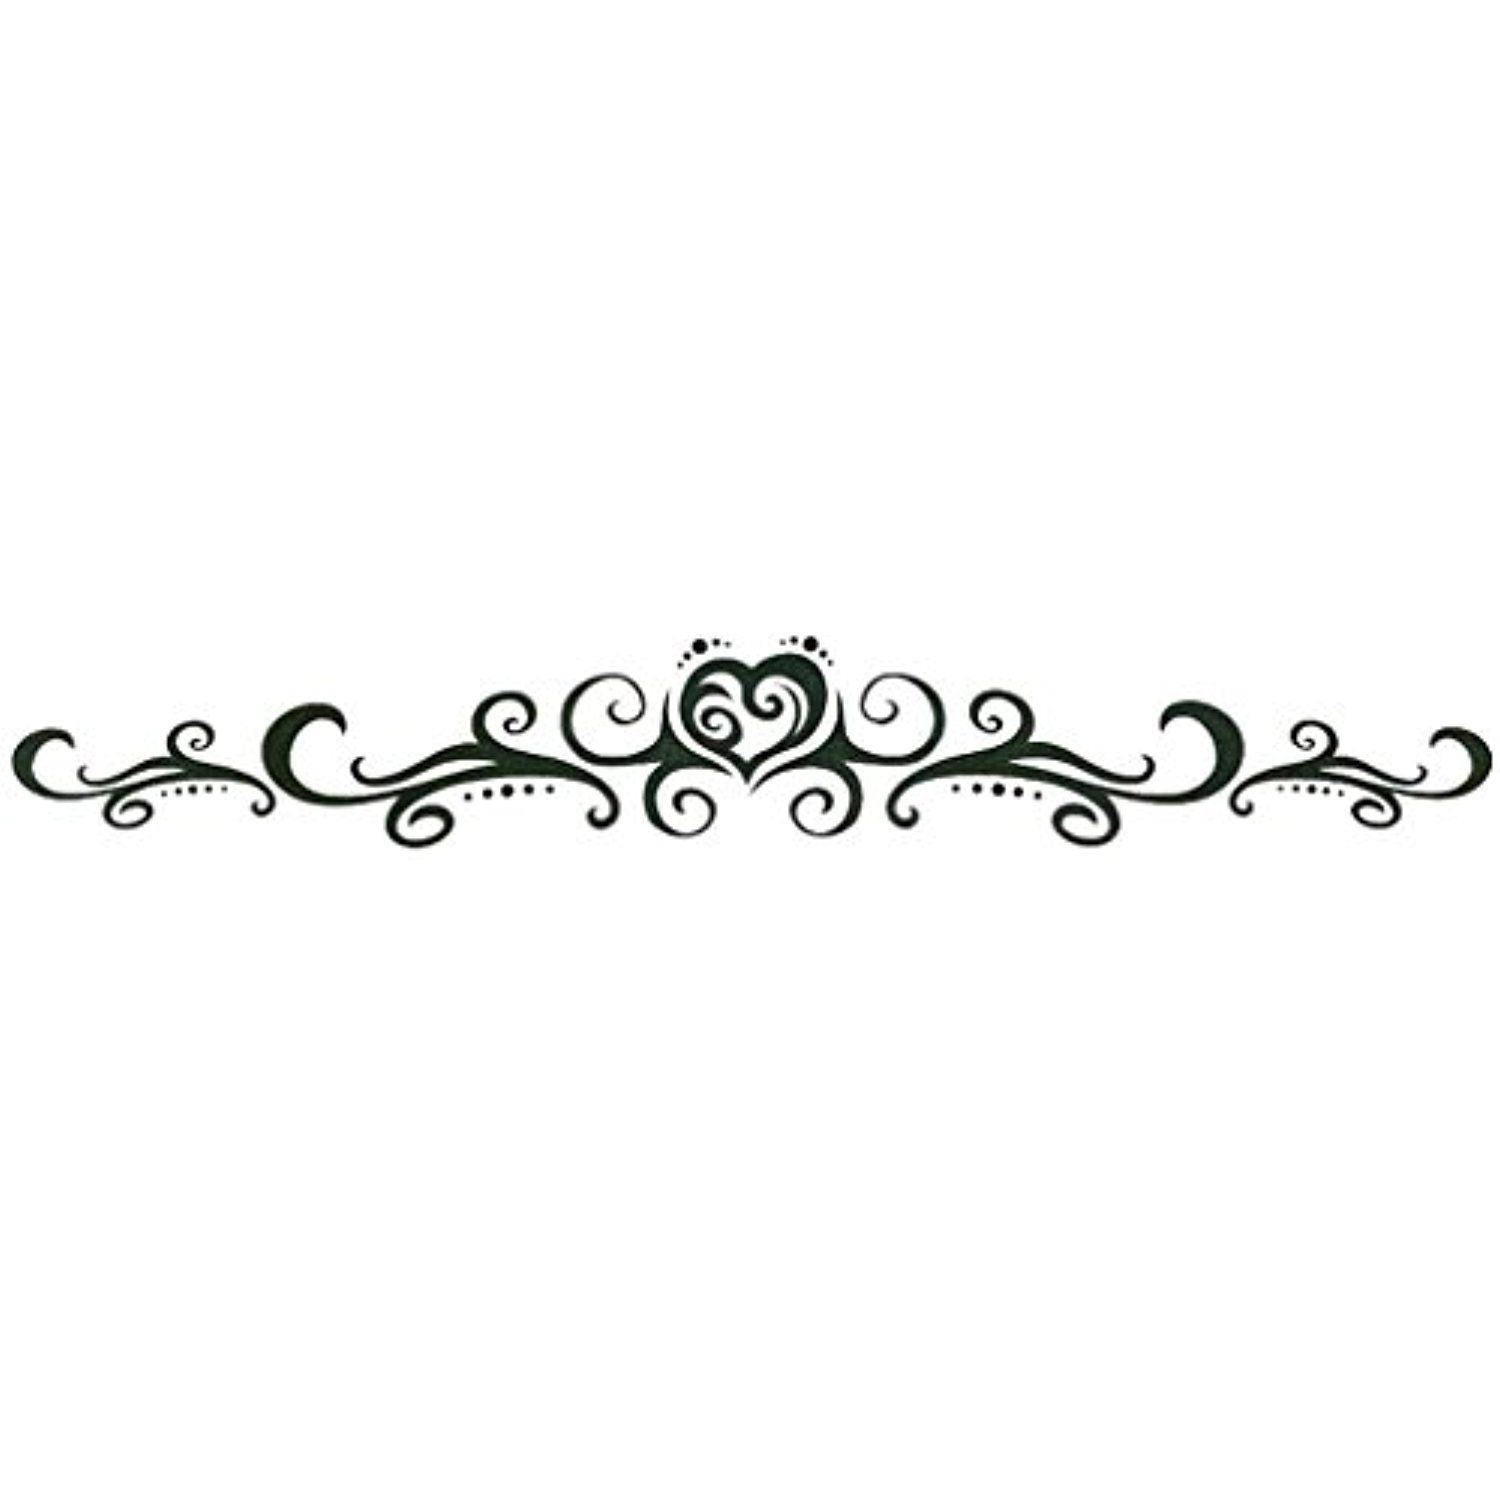 Tattoo ideas for lower back tribal heart lower back or armband temporary body art tattoos